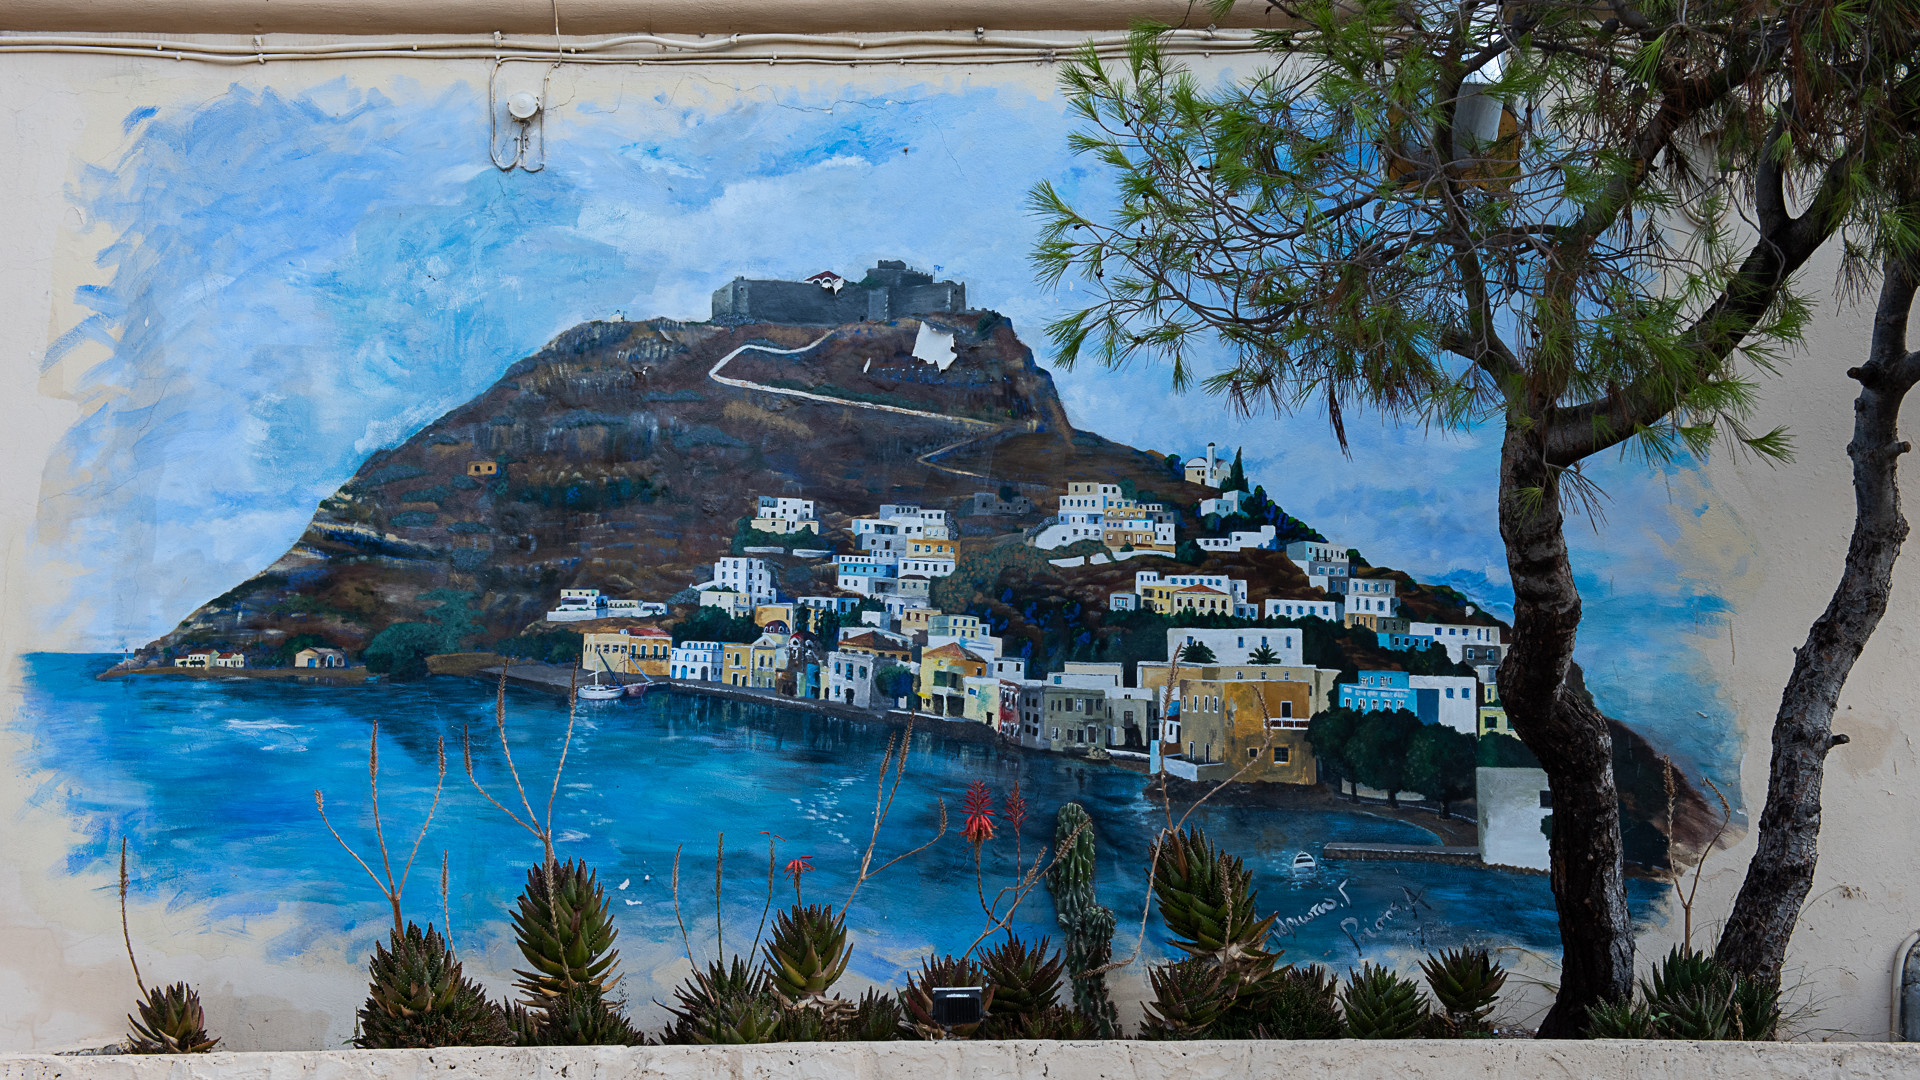 Leros island, Greece. Painting on the Military Officers' Club at Lakki (Portolago)